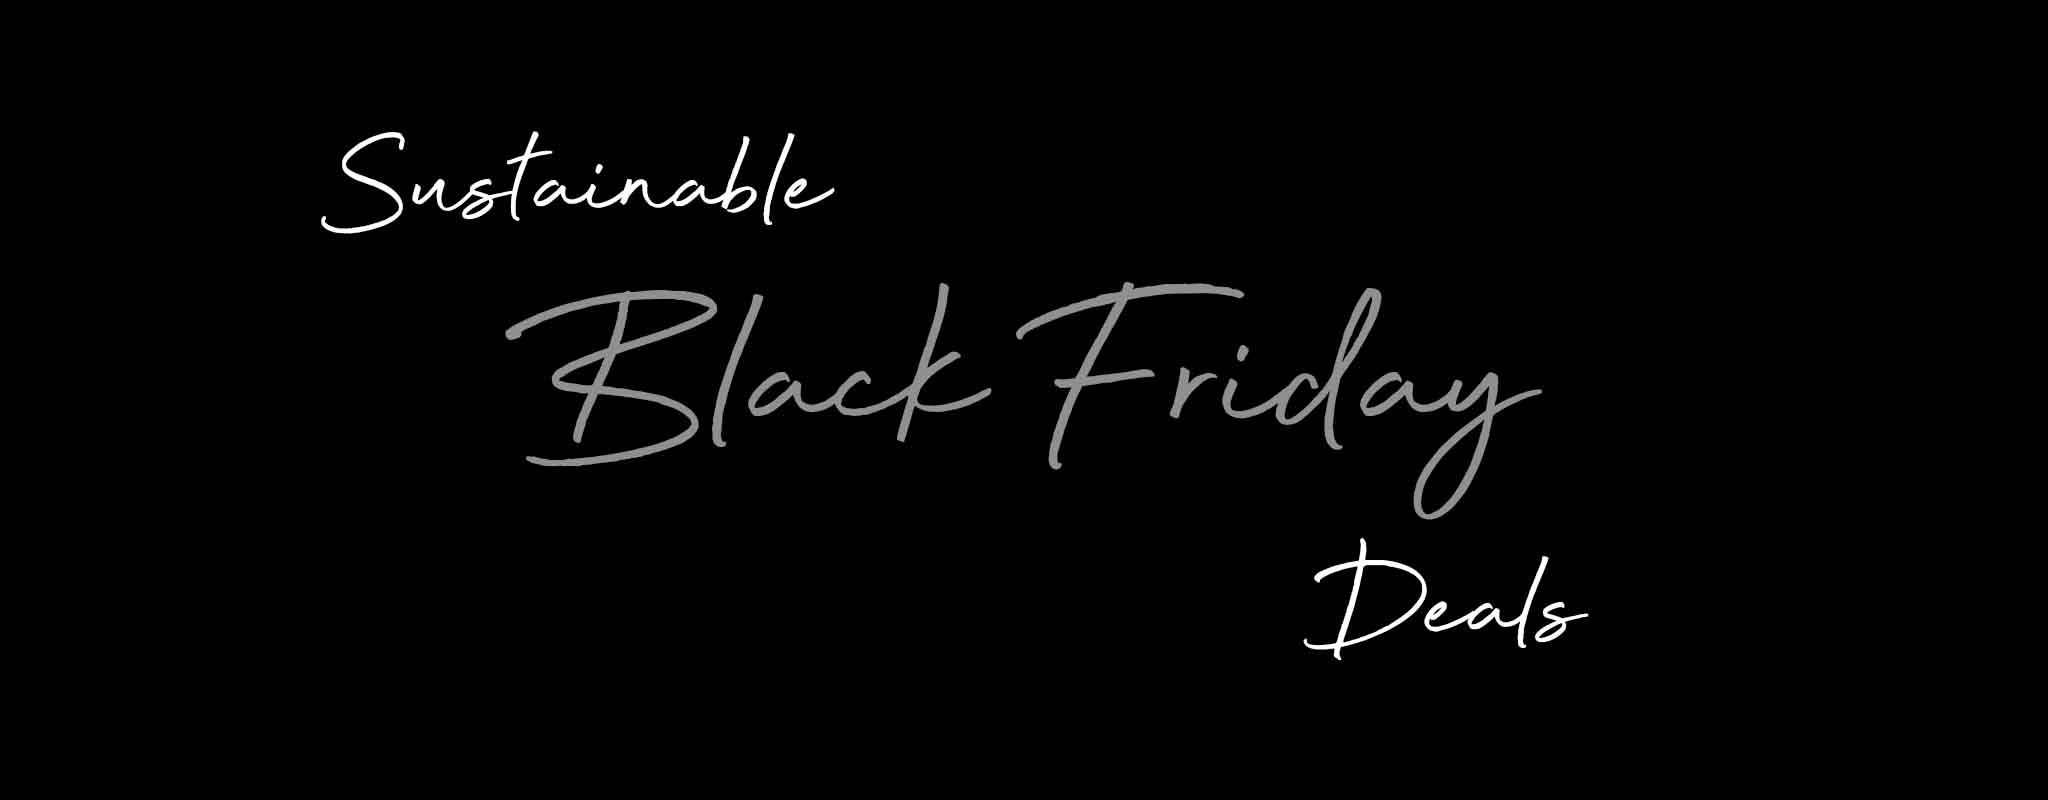 Sustainable Black Friday Deals